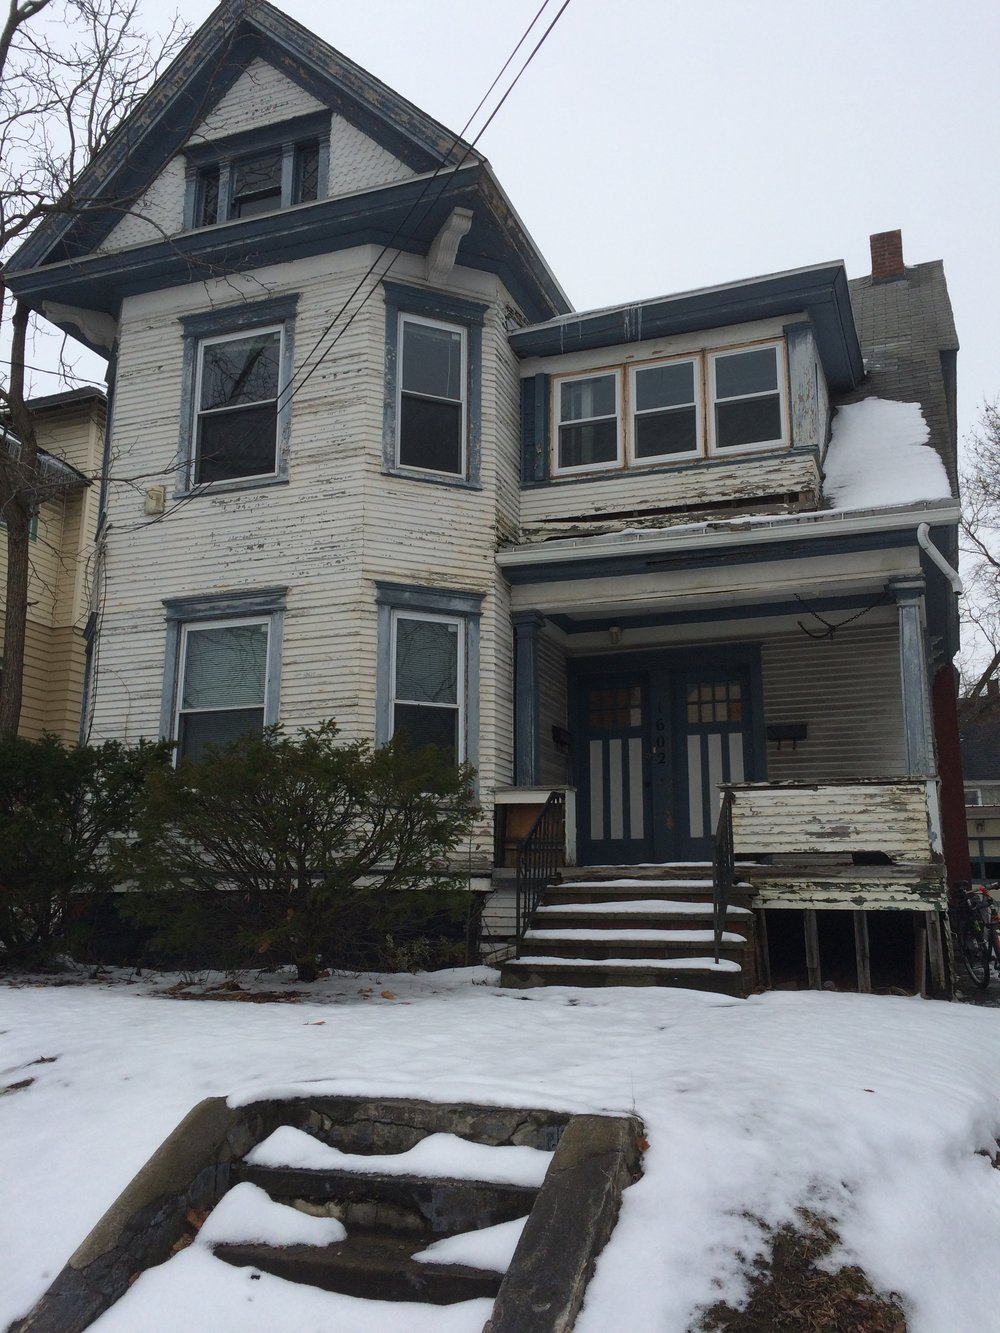 A Tiny Home for Good recently acquired this beaut in Syracuse's Westside. The two family home will be rehabbed over the winter and offered to families facing homelessness.